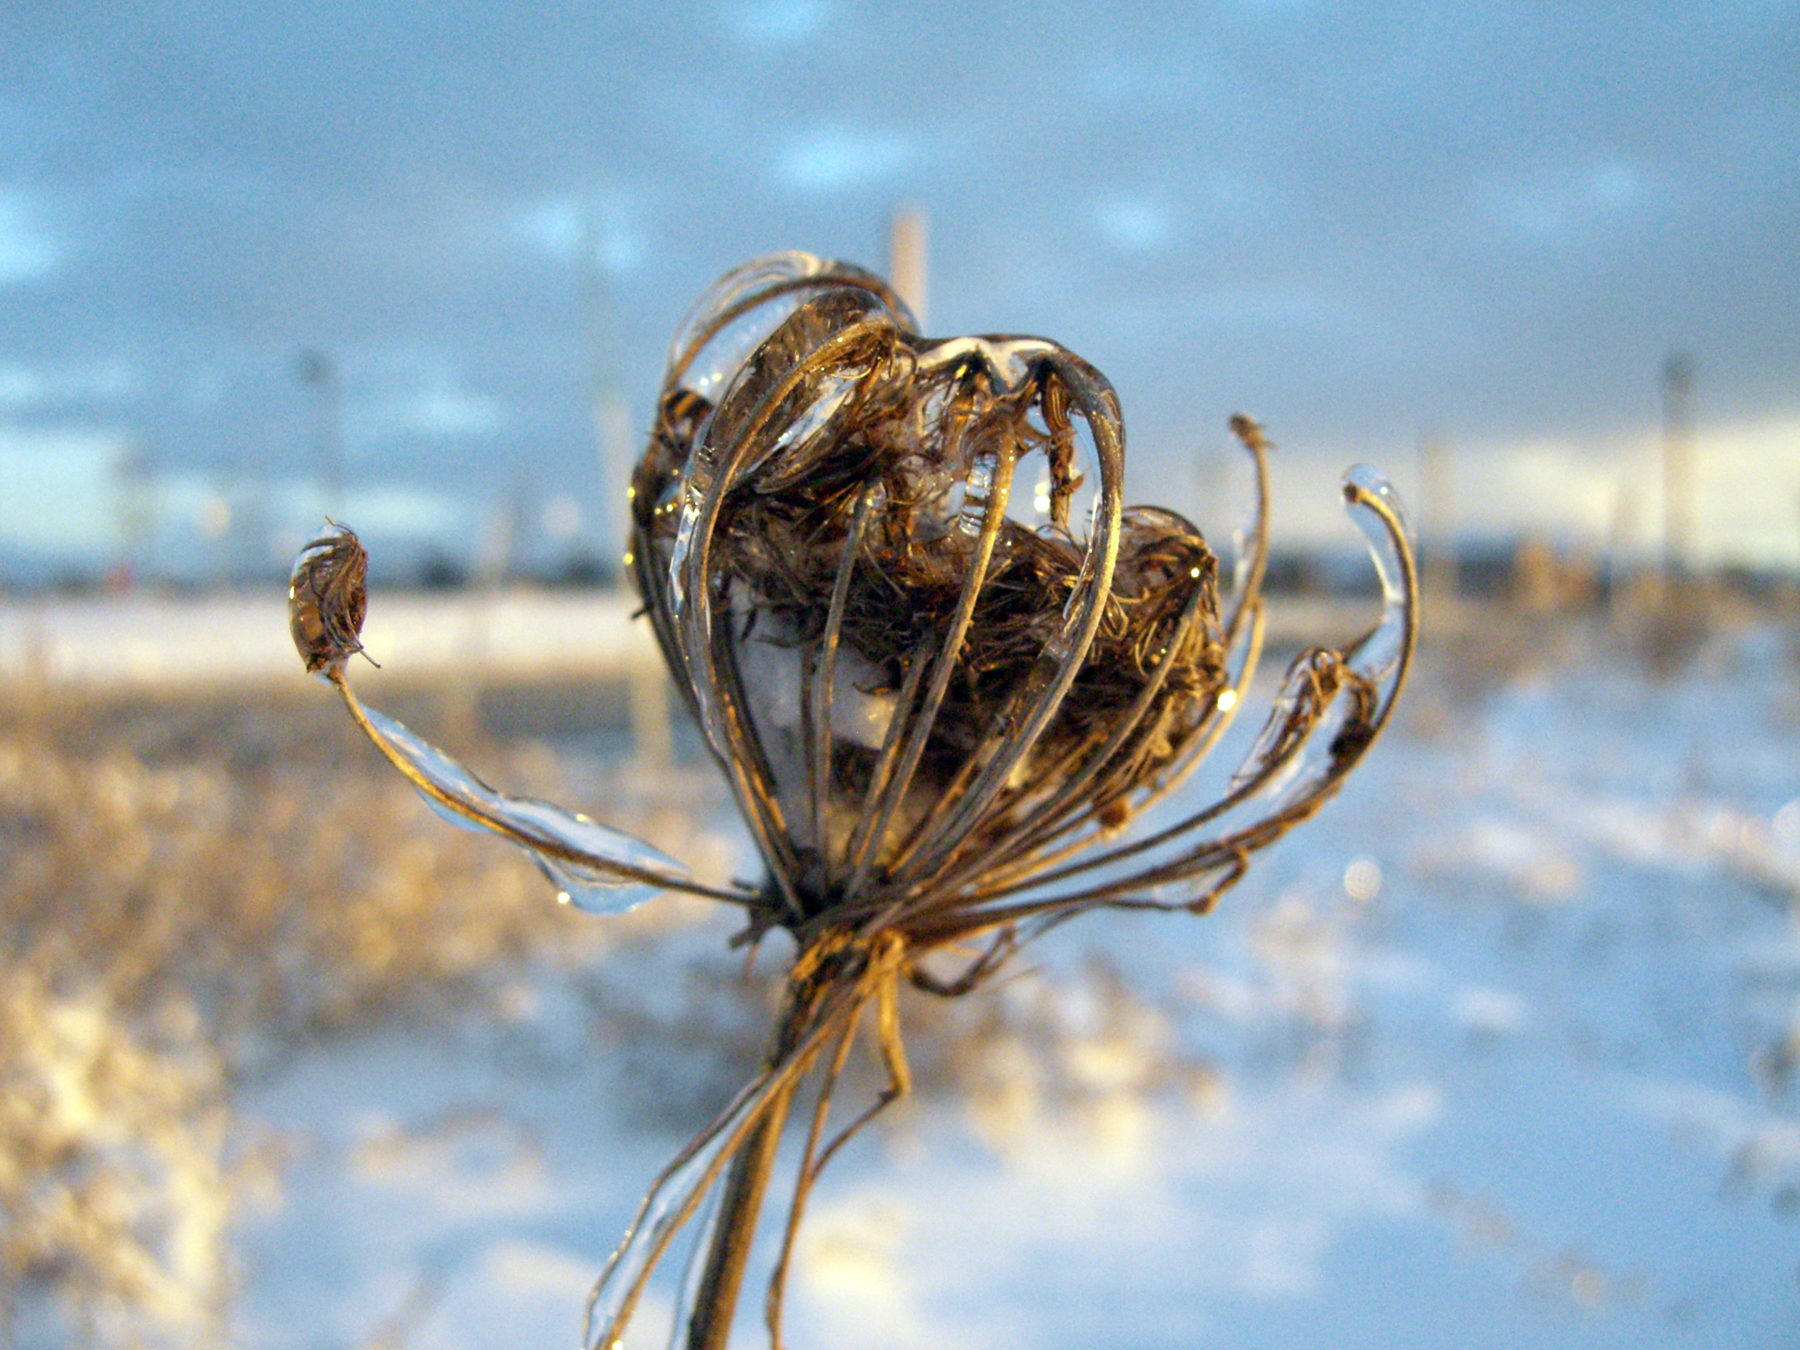 Winter weeds, Bspo06, Ice, Plants, Snow, HQ Photo